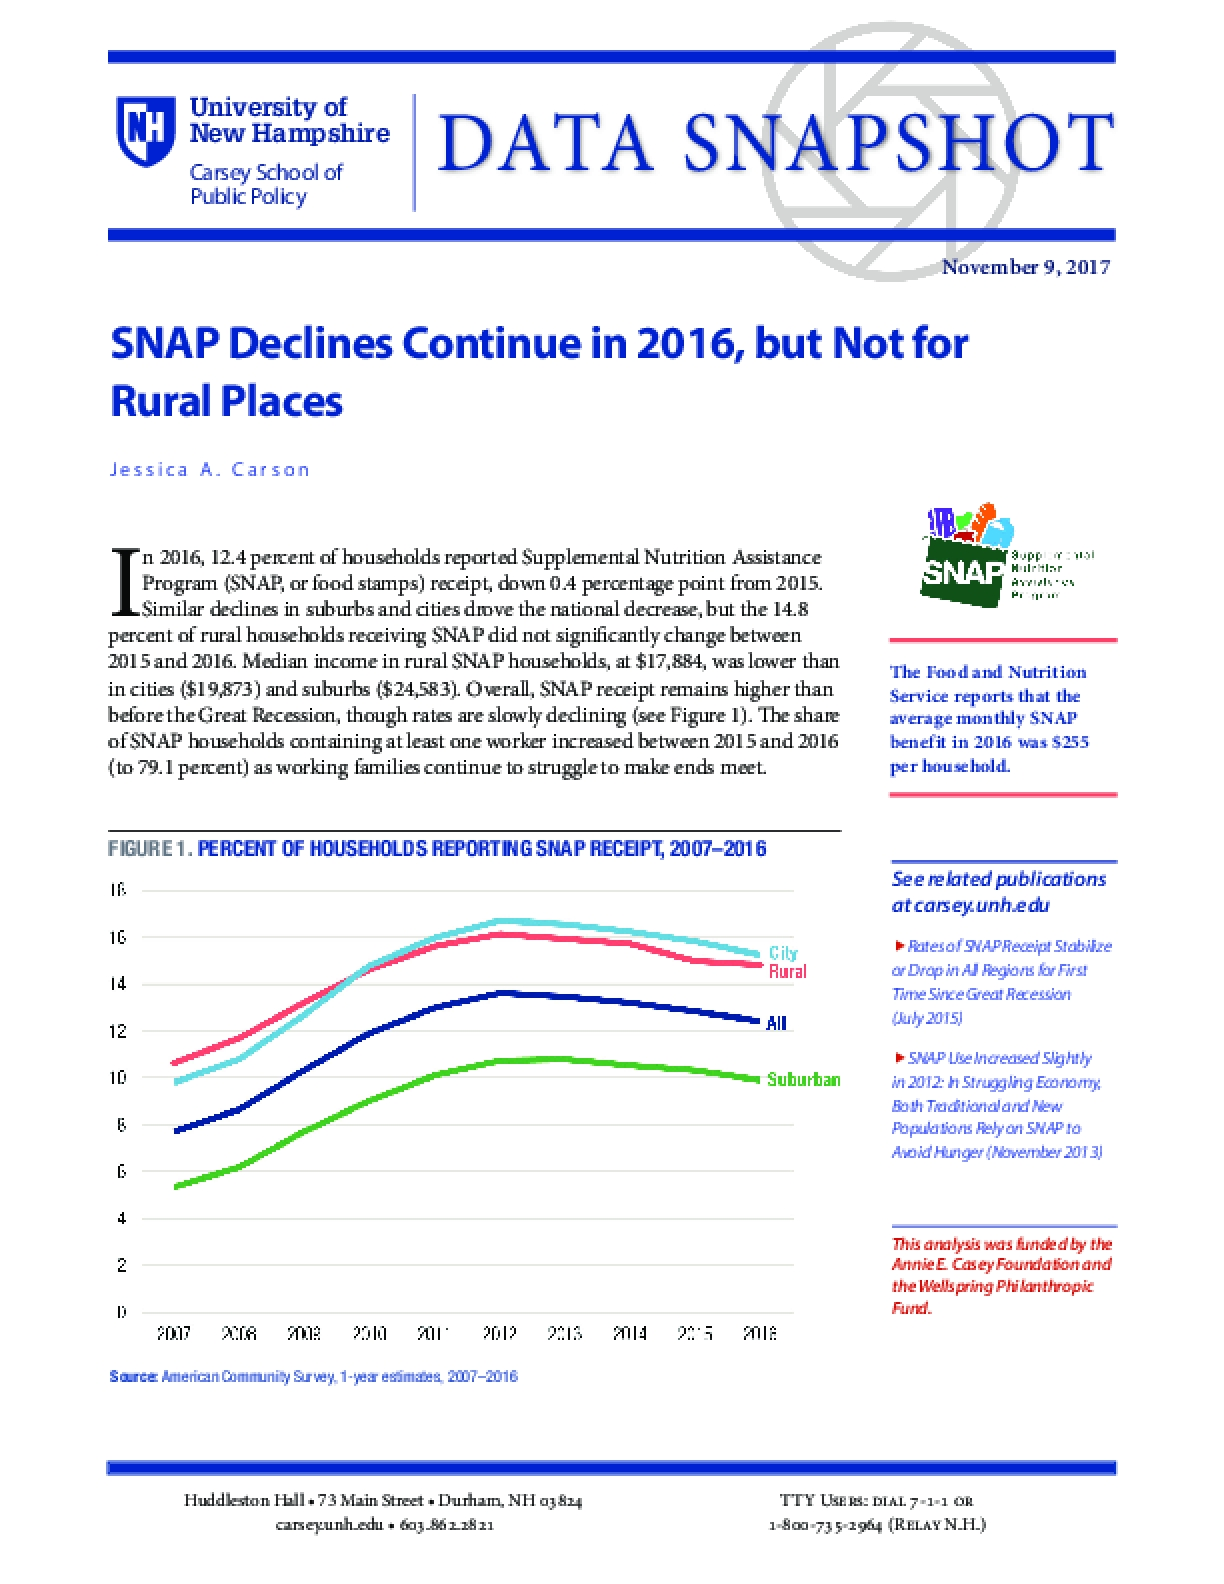 Data Snapshot: SNAP Declines Continue in 2016, but Not for Rural Places